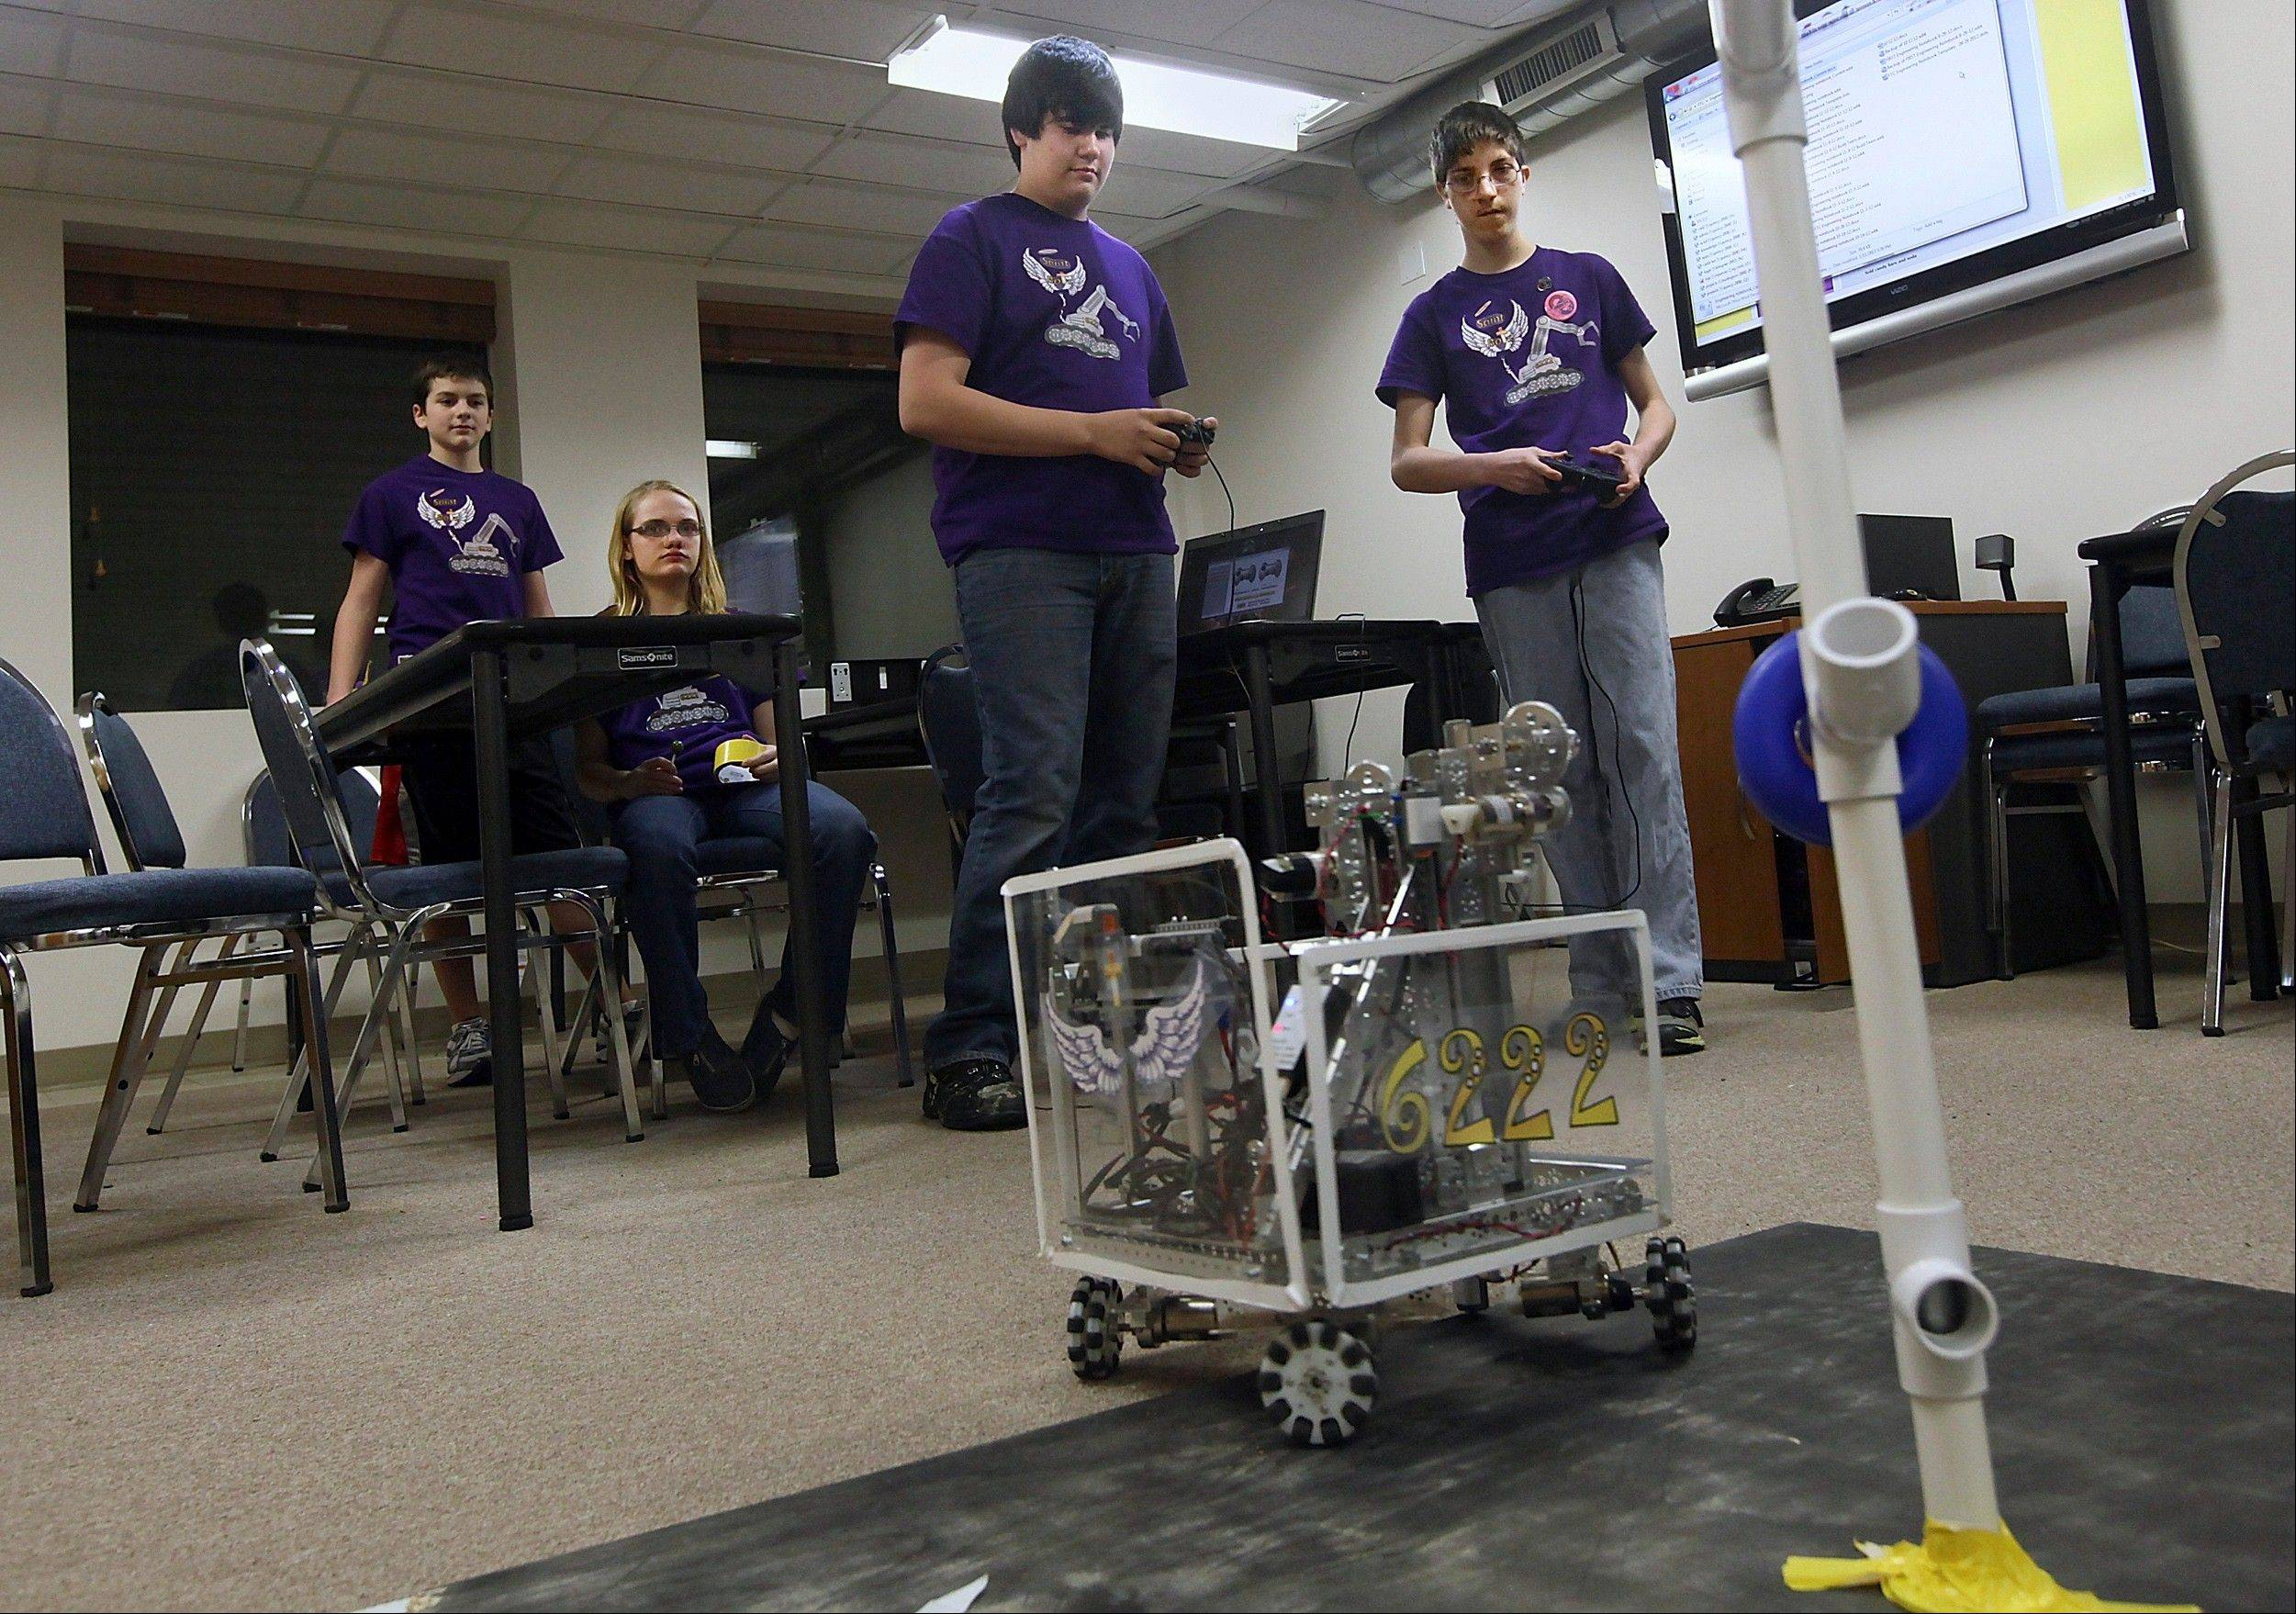 Associated PressHome-schooled students Andrew Lukens, center, and Joshua Wiley, right, operate a robot with game controllers as they try to get rings off one side of the pole and move the robot around the pole and replace the rings on the opposite side in Quincy.